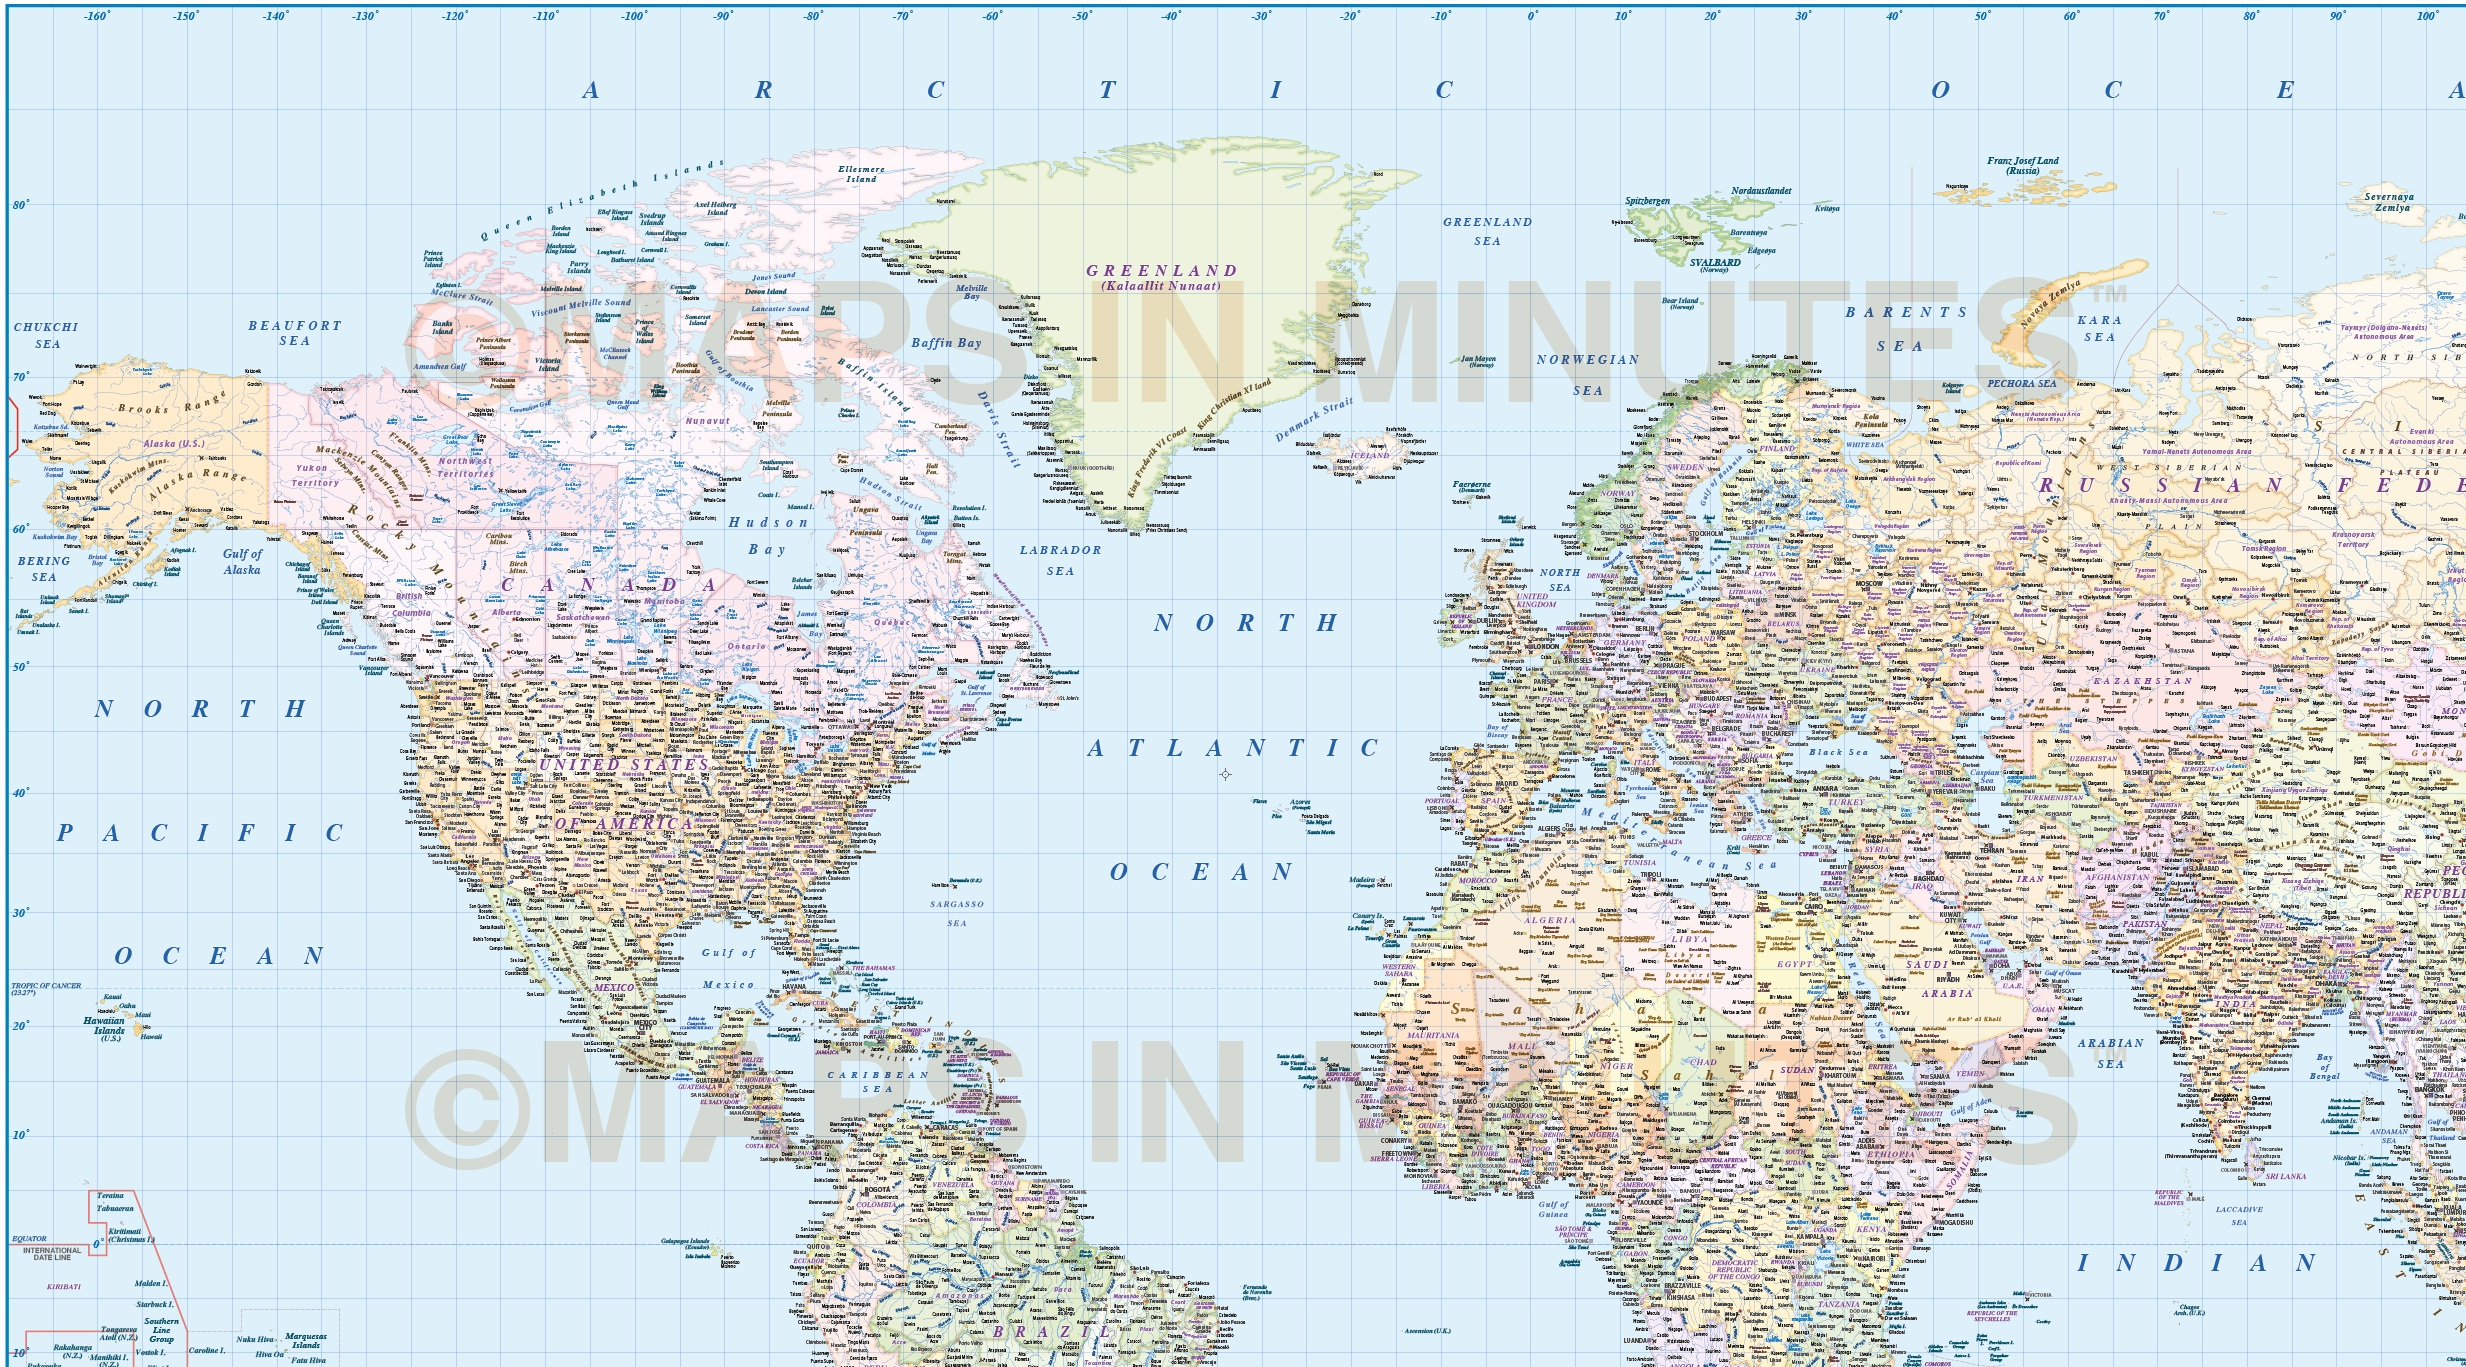 Digital vector world map with ocean floor contours and country digital vector map political gall world map with insets and ocean floor contours detail gumiabroncs Gallery